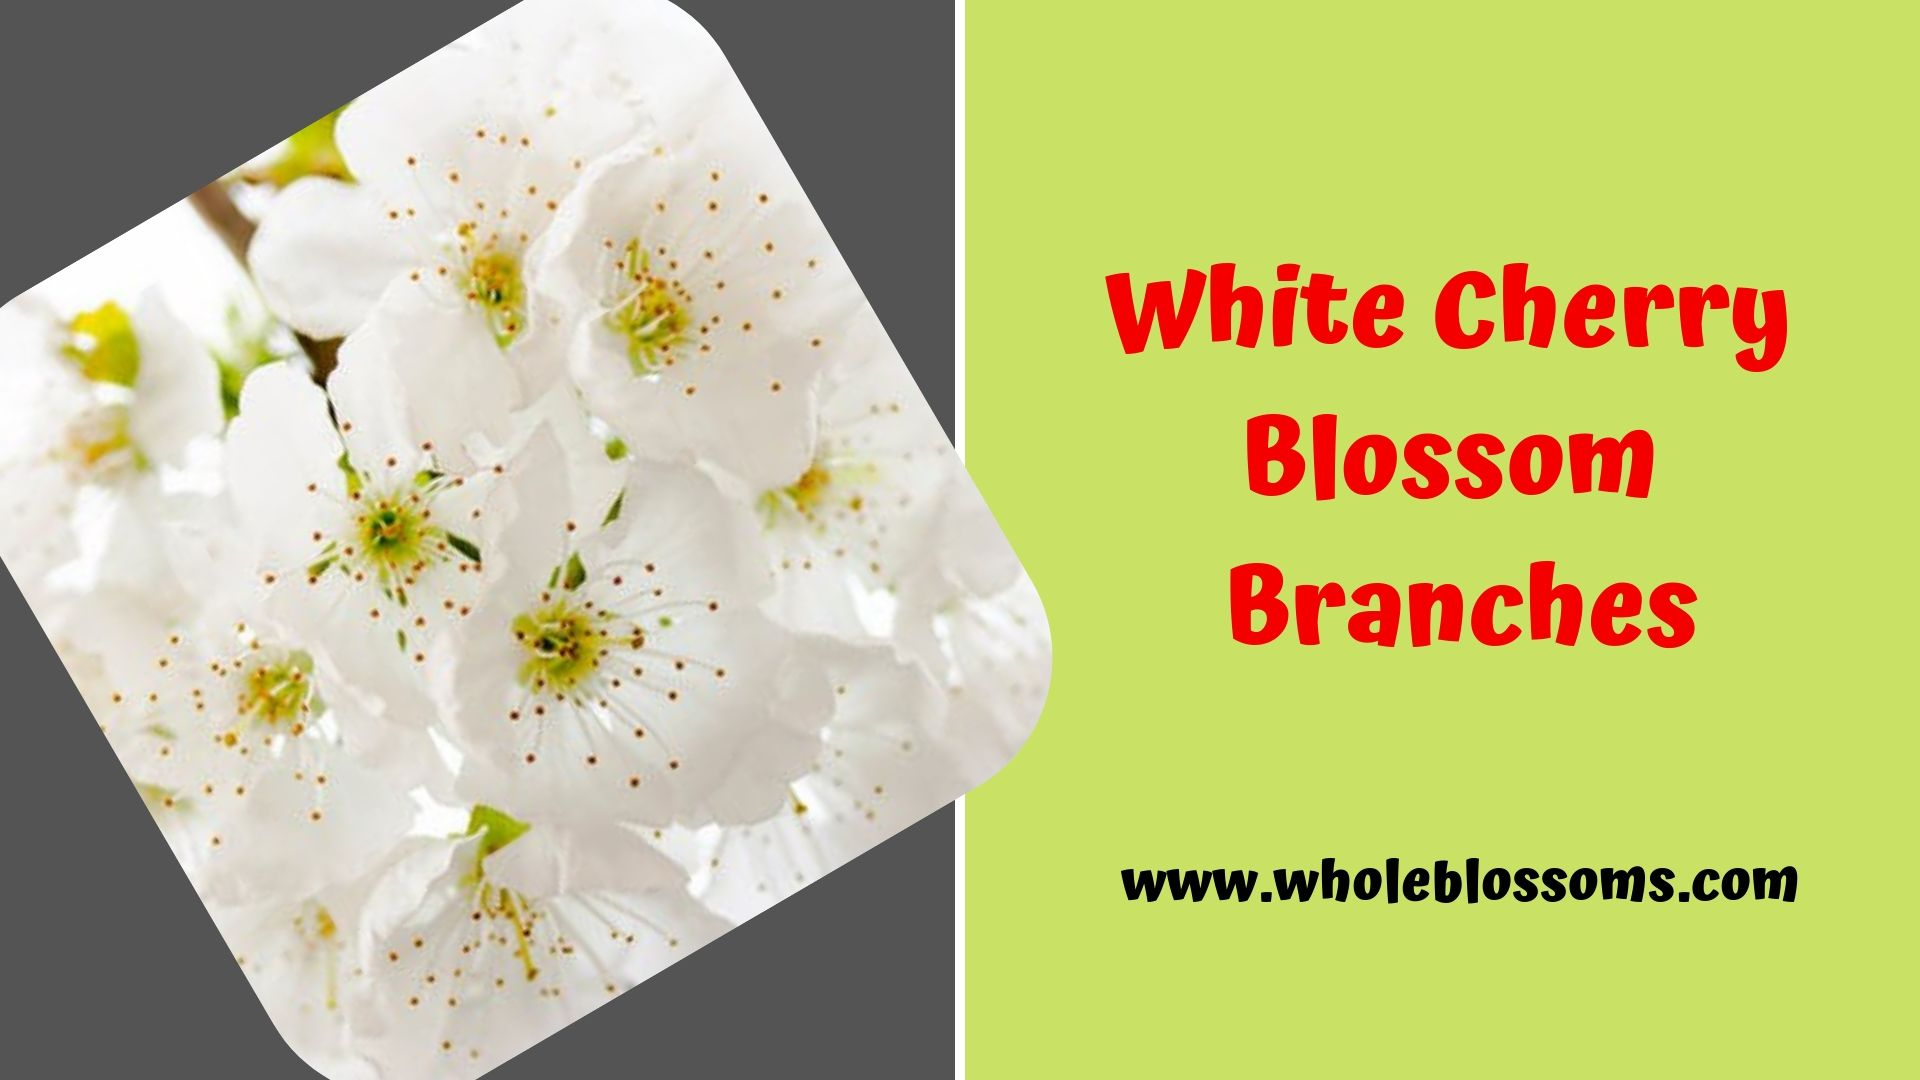 Add White Cherry Blossom Branches In Your Special Day White Cherry Blossom White Cherries Cherry Blossom Branch